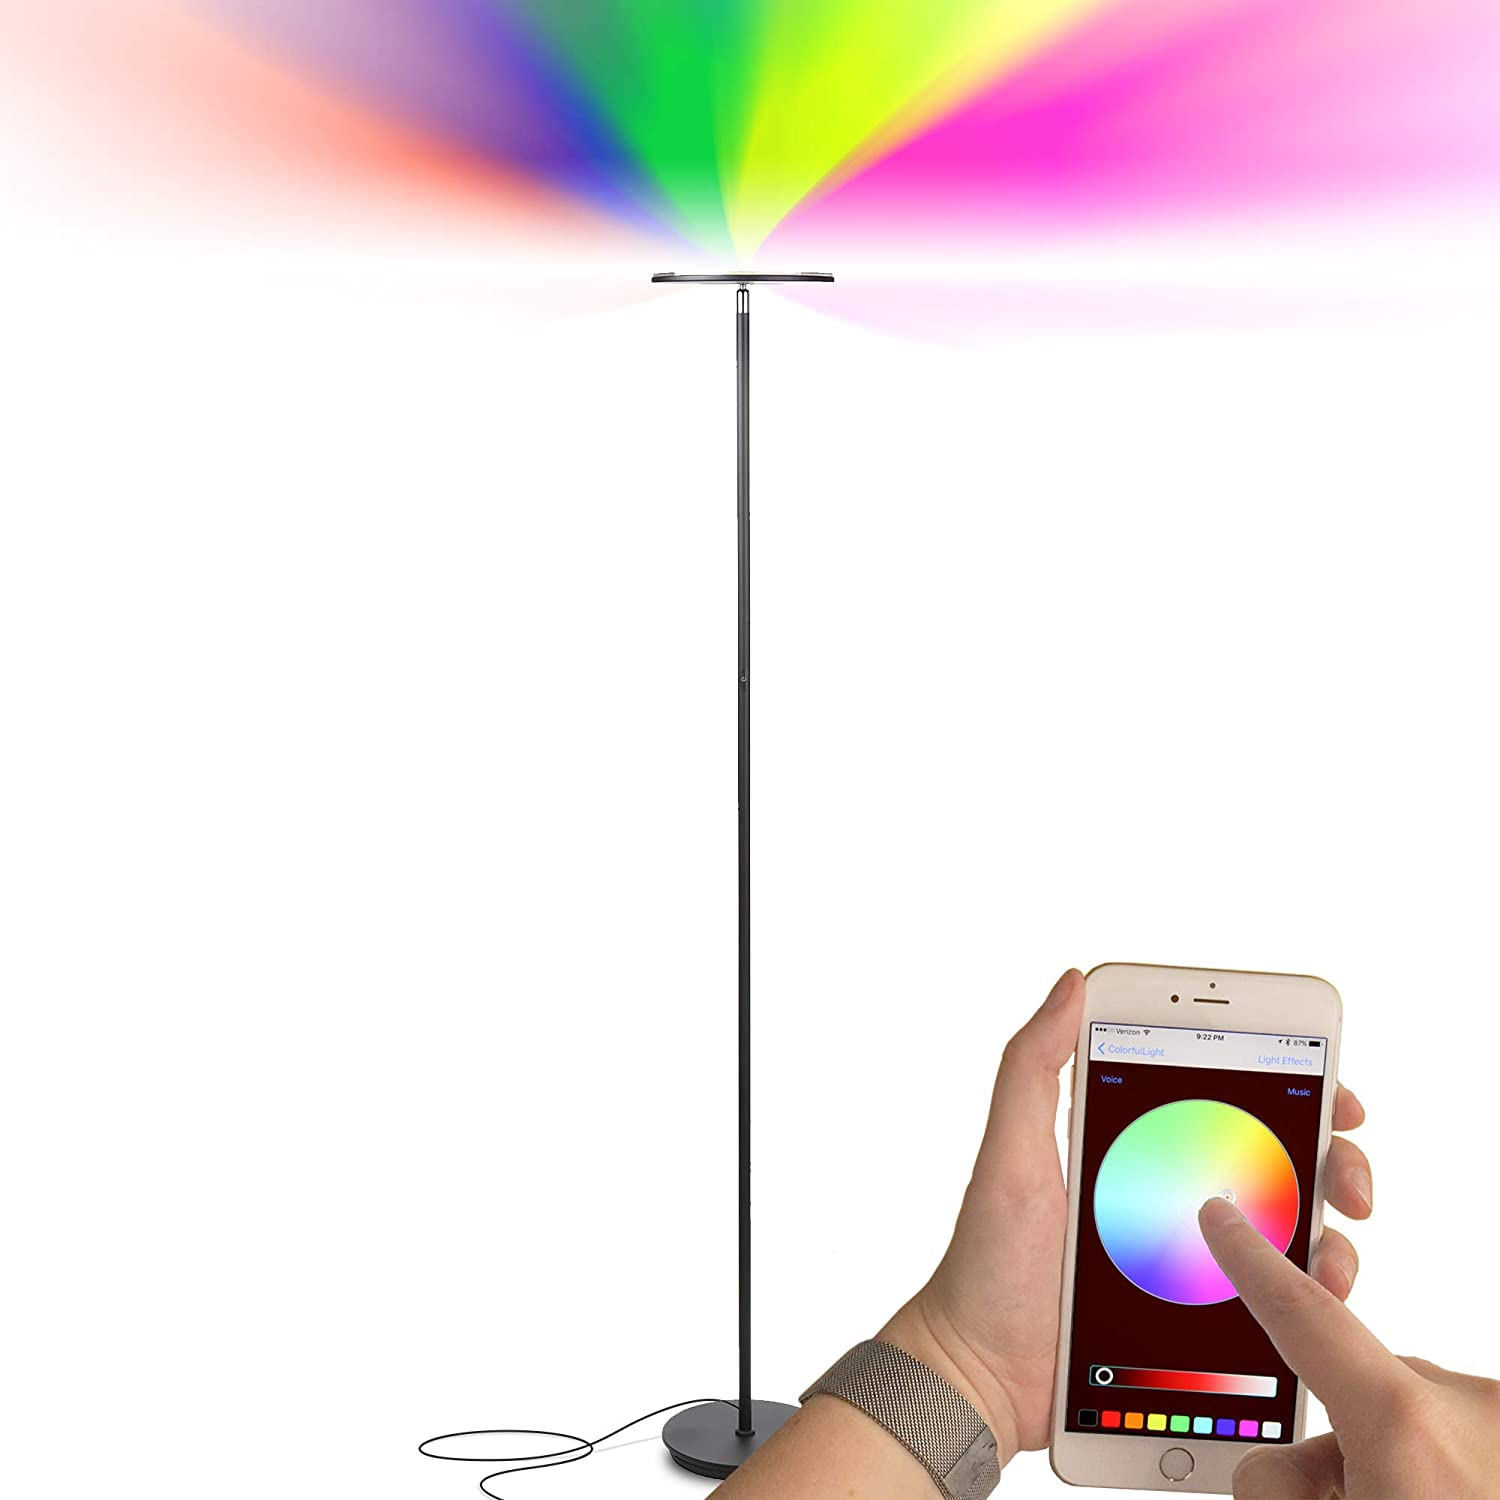 Brightech Kuler Sky – Color Changing Torchiere LED Floor Lamp – Dimmable Light – Remote Control via iOs Android App – Lamp for Living Rooms, Game Rooms Bedrooms – Adjustable Pivoting Head – Black